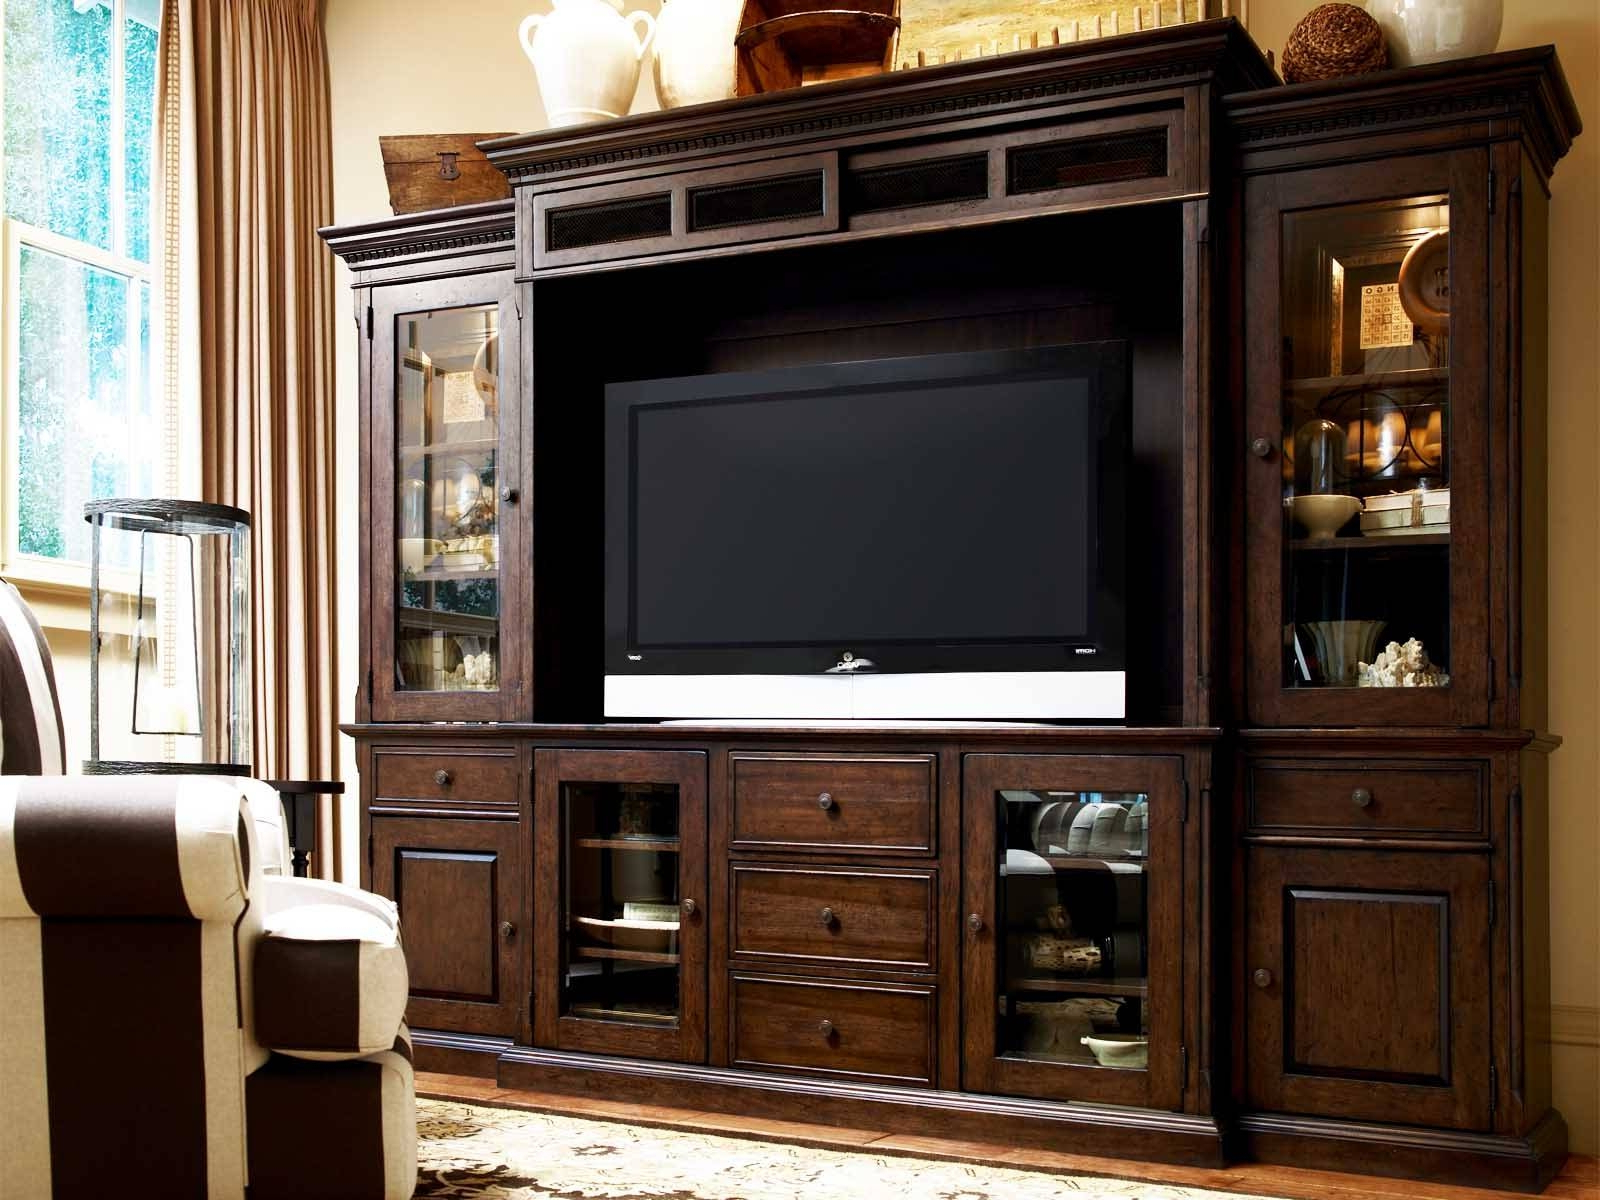 Glass Tv Cabinets With Doors In Well Known Wooden Tv Cabinet Tv Cabinet With Glass Doors Filing Cabinets Argos (Gallery 6 of 20)